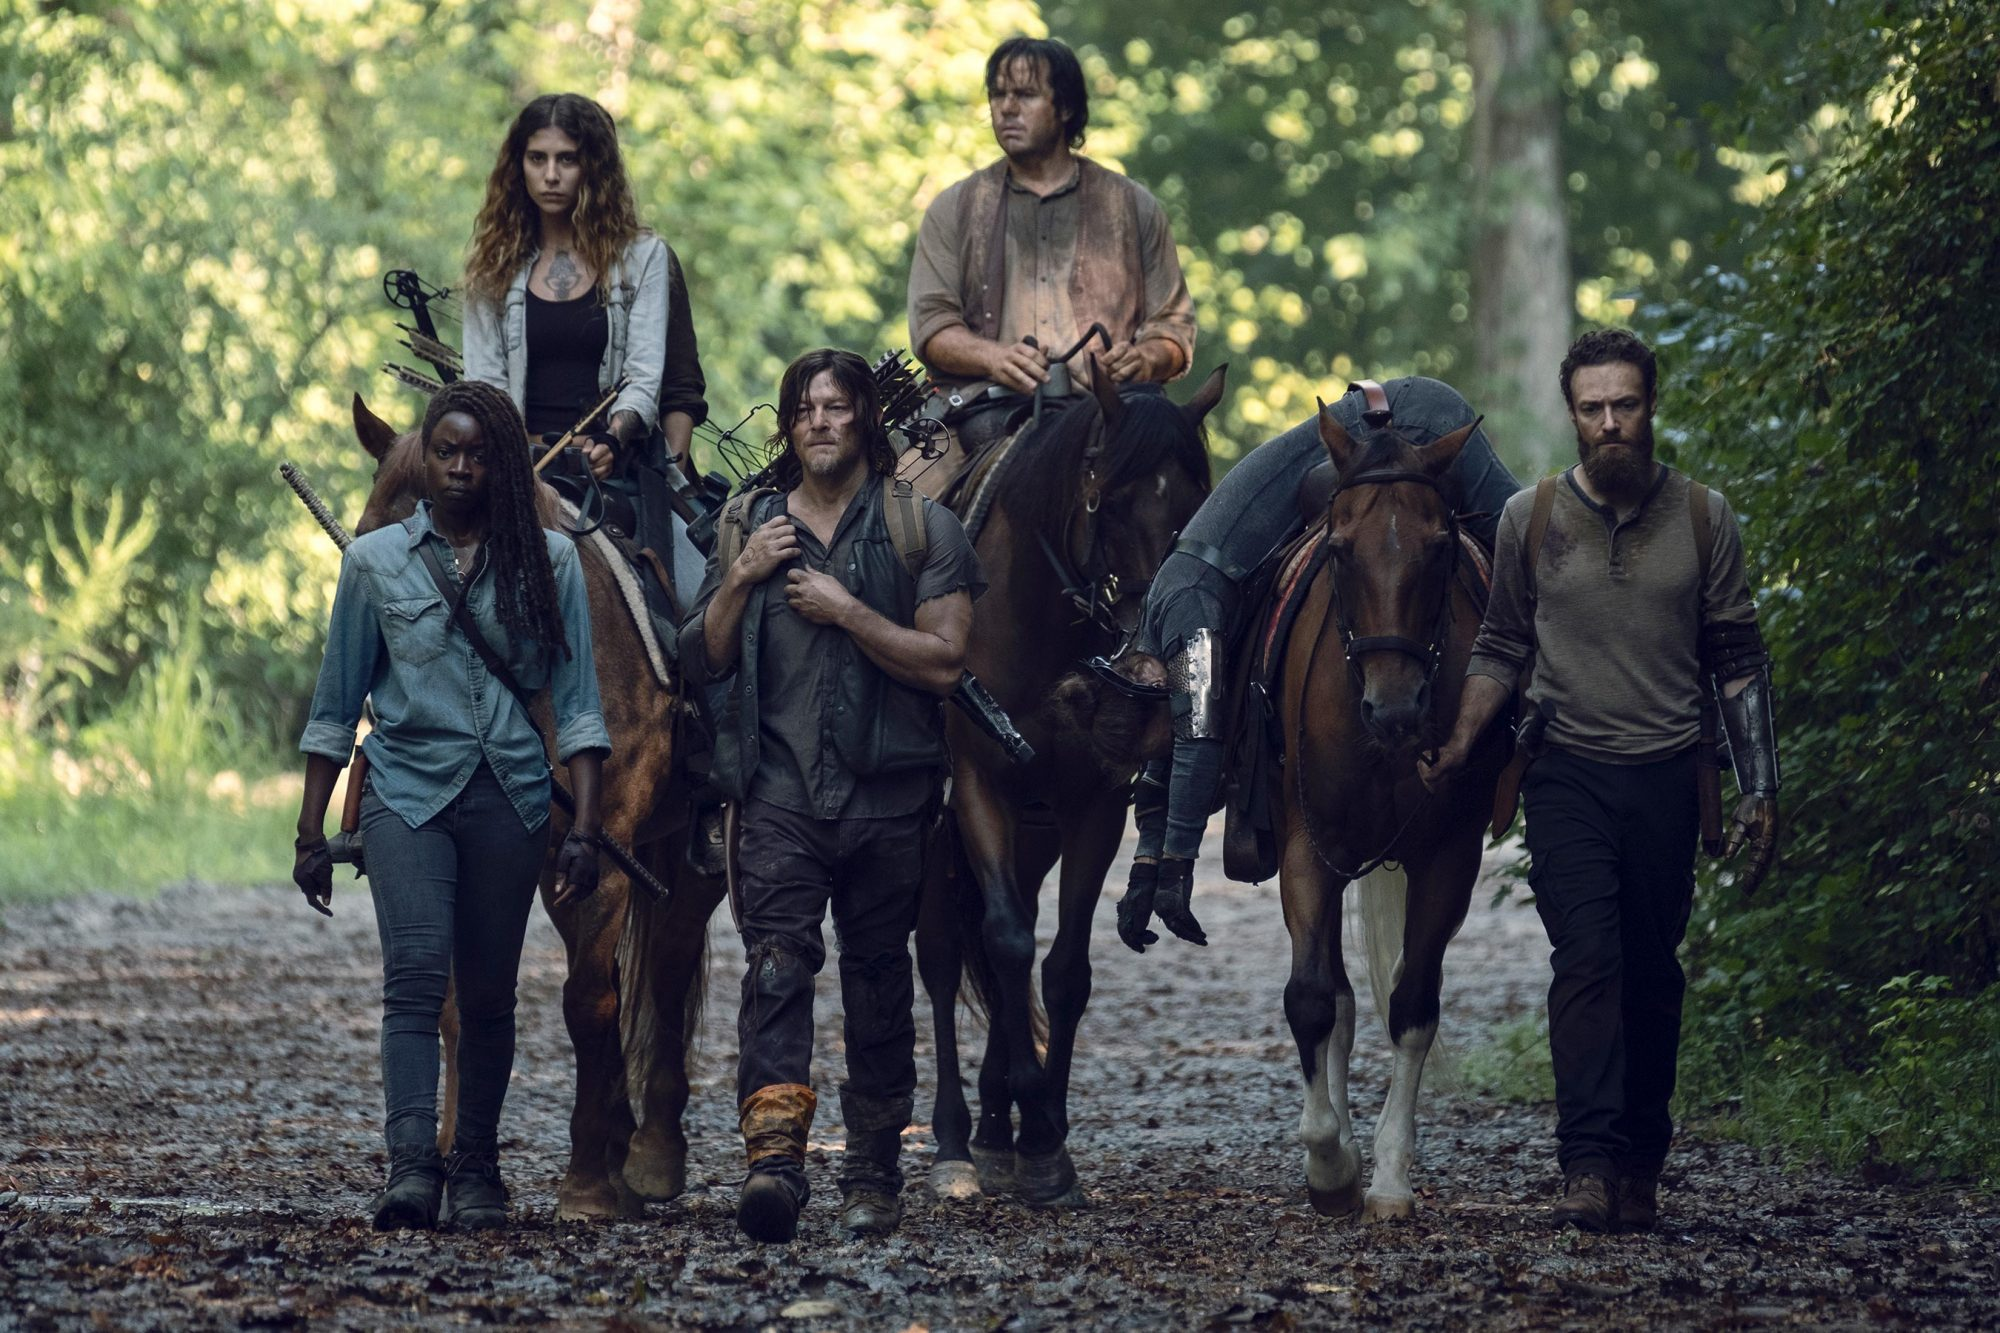 twd_909_jld_0822_00086_rt